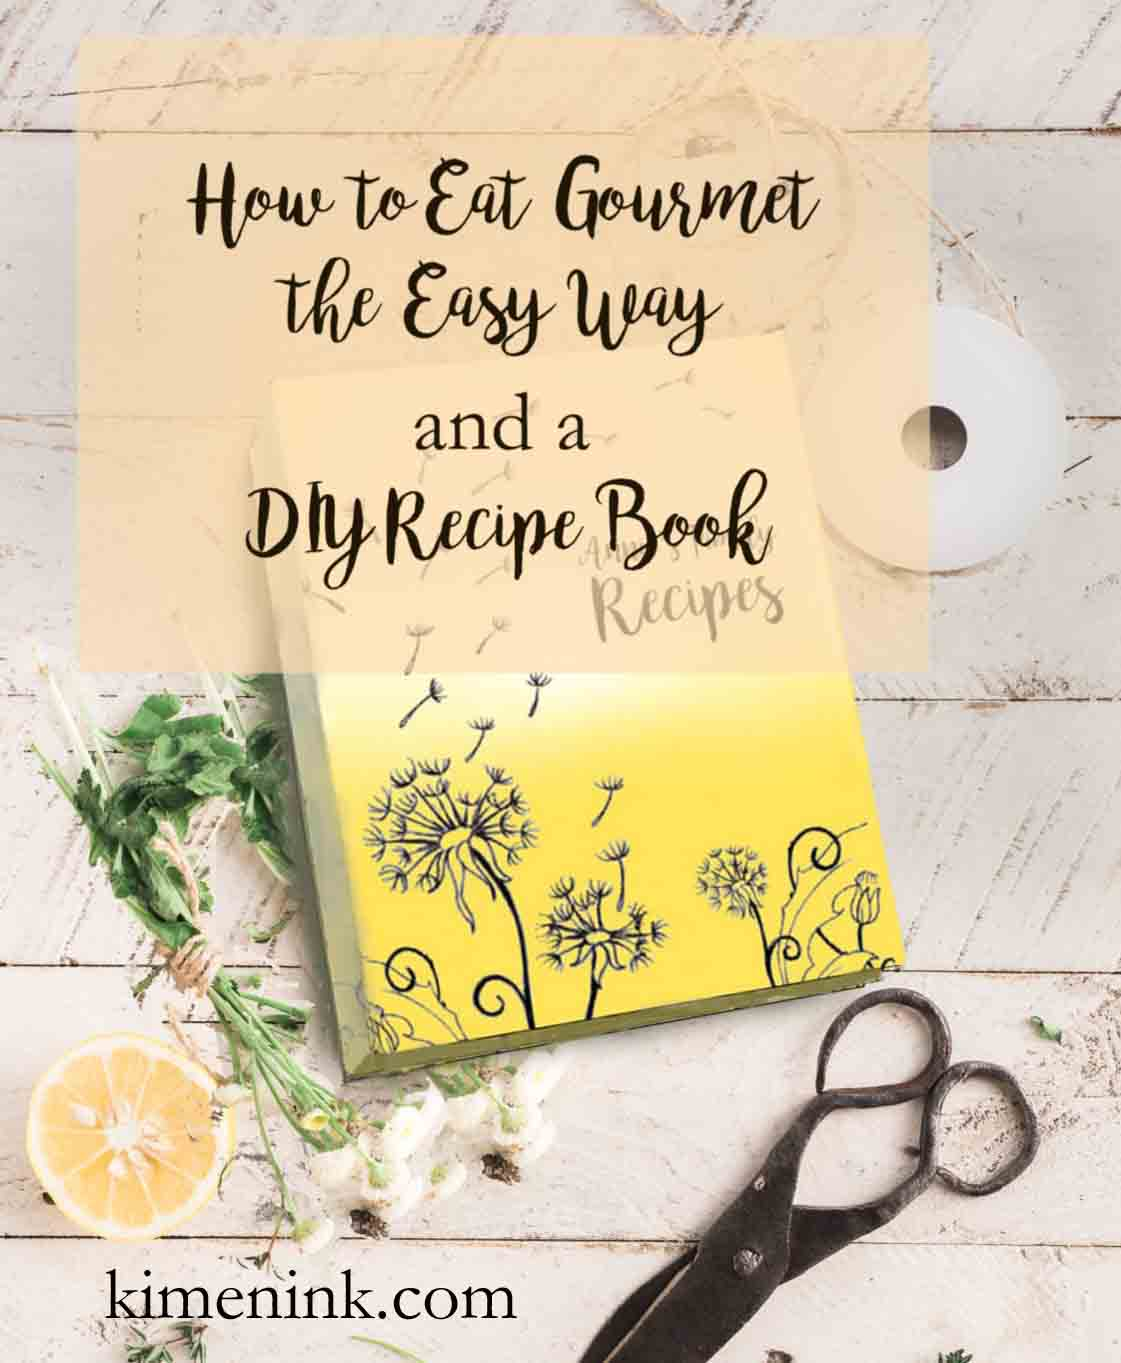 how to eat gourmet the easy way and a DIY Recipe Book